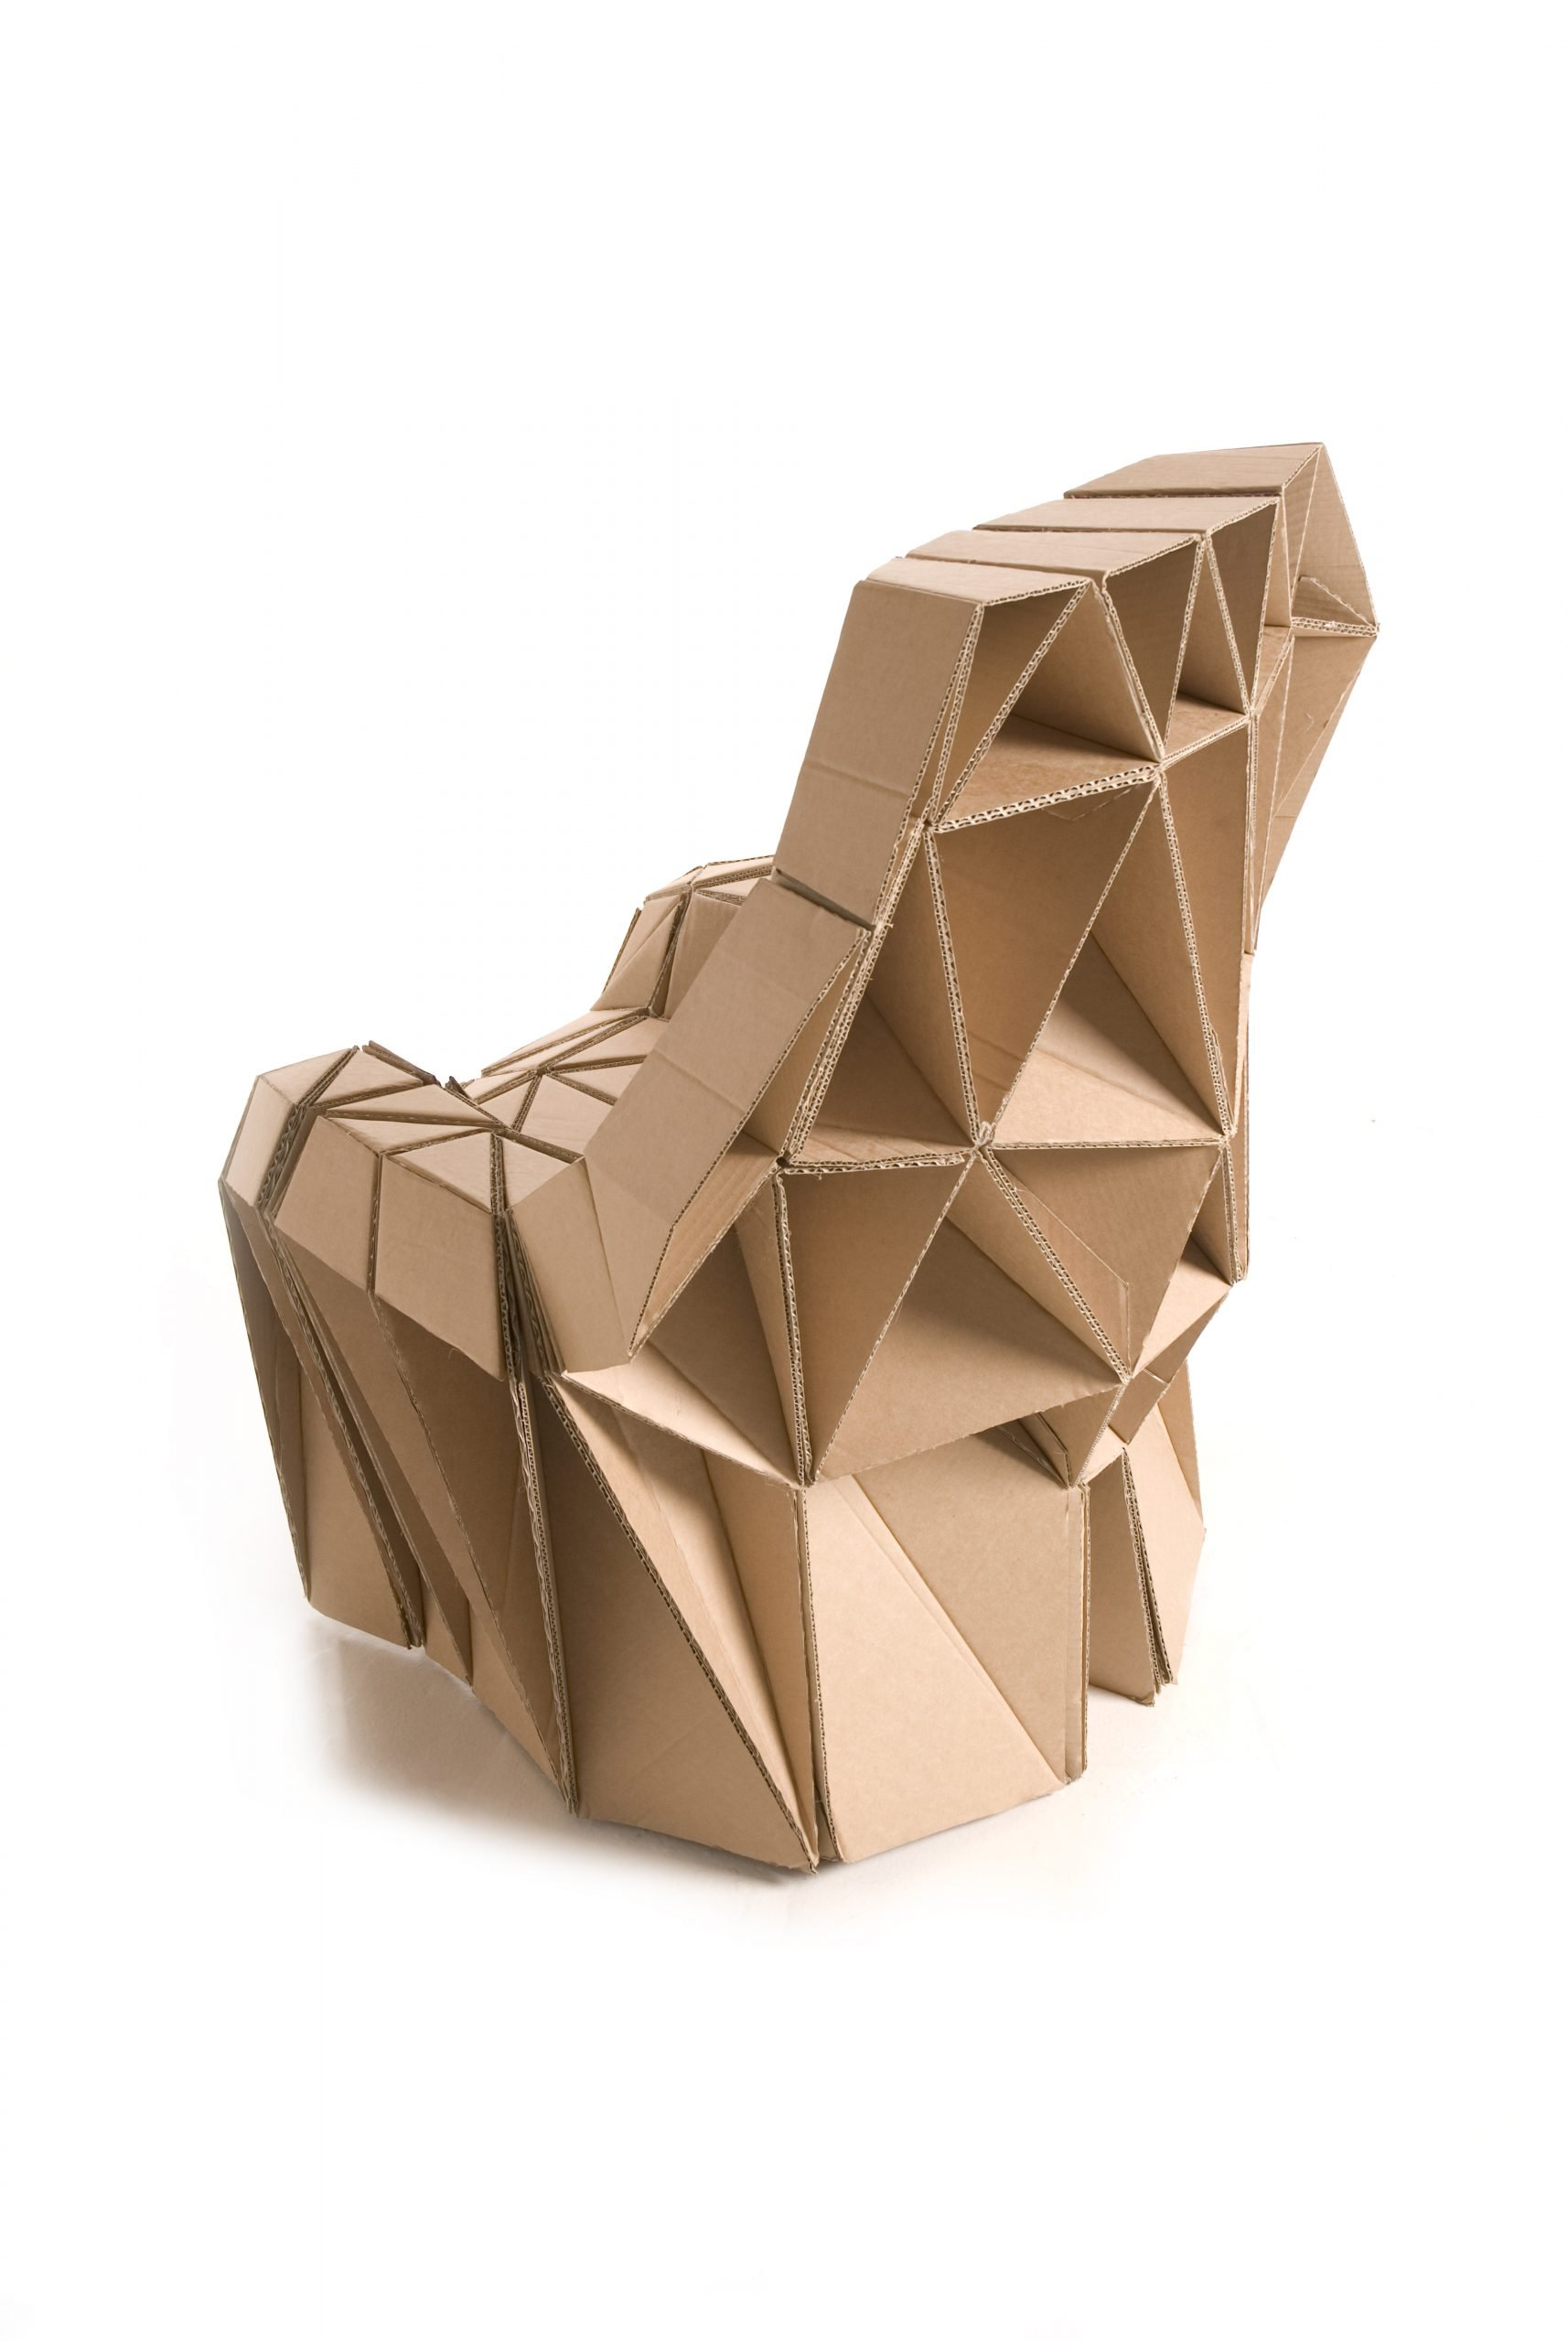 Back view of a cardboard chair made using individual triangular components. by design studio Lazerian